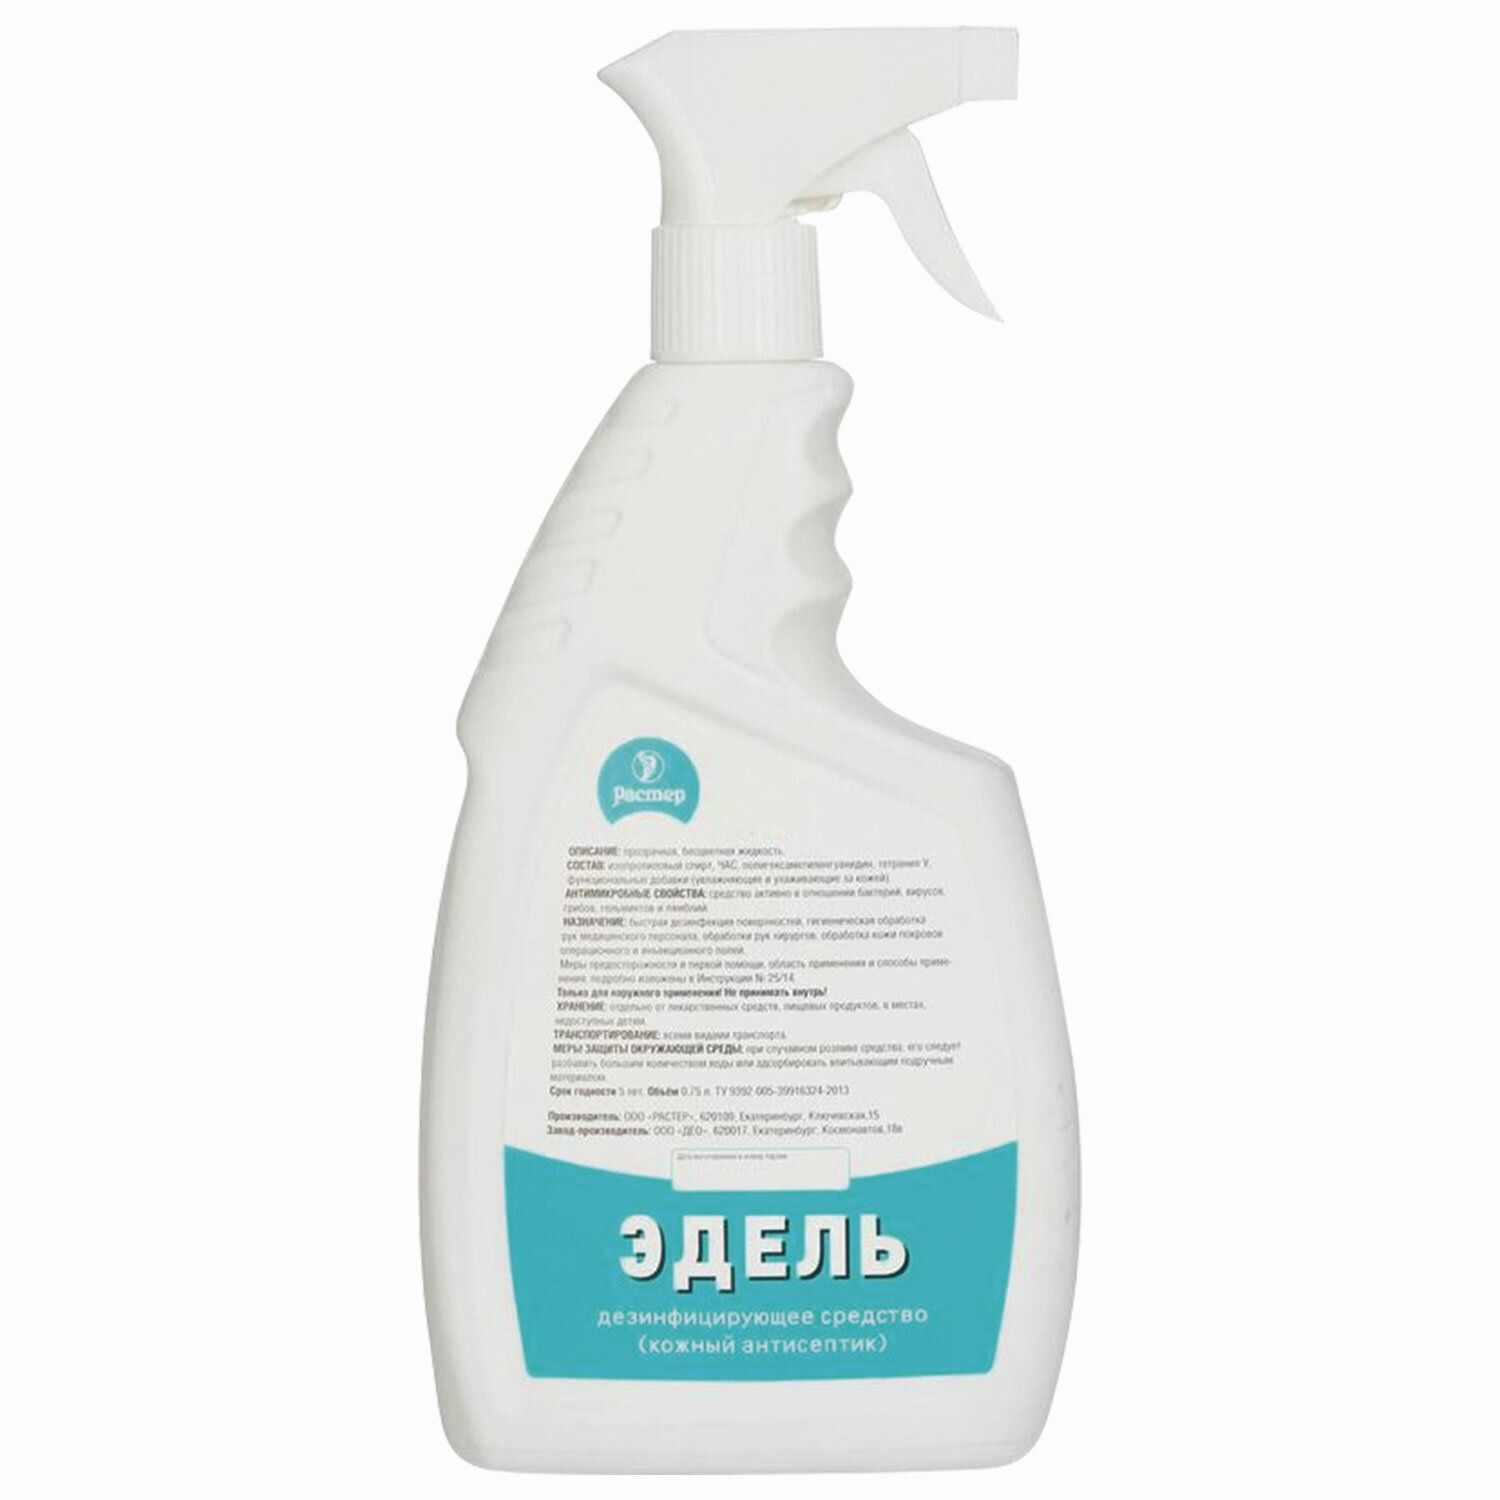 EDEL / Antiseptic, skin disinfecting alcohol-containing (65%) 750 ml ready-made solution, spray